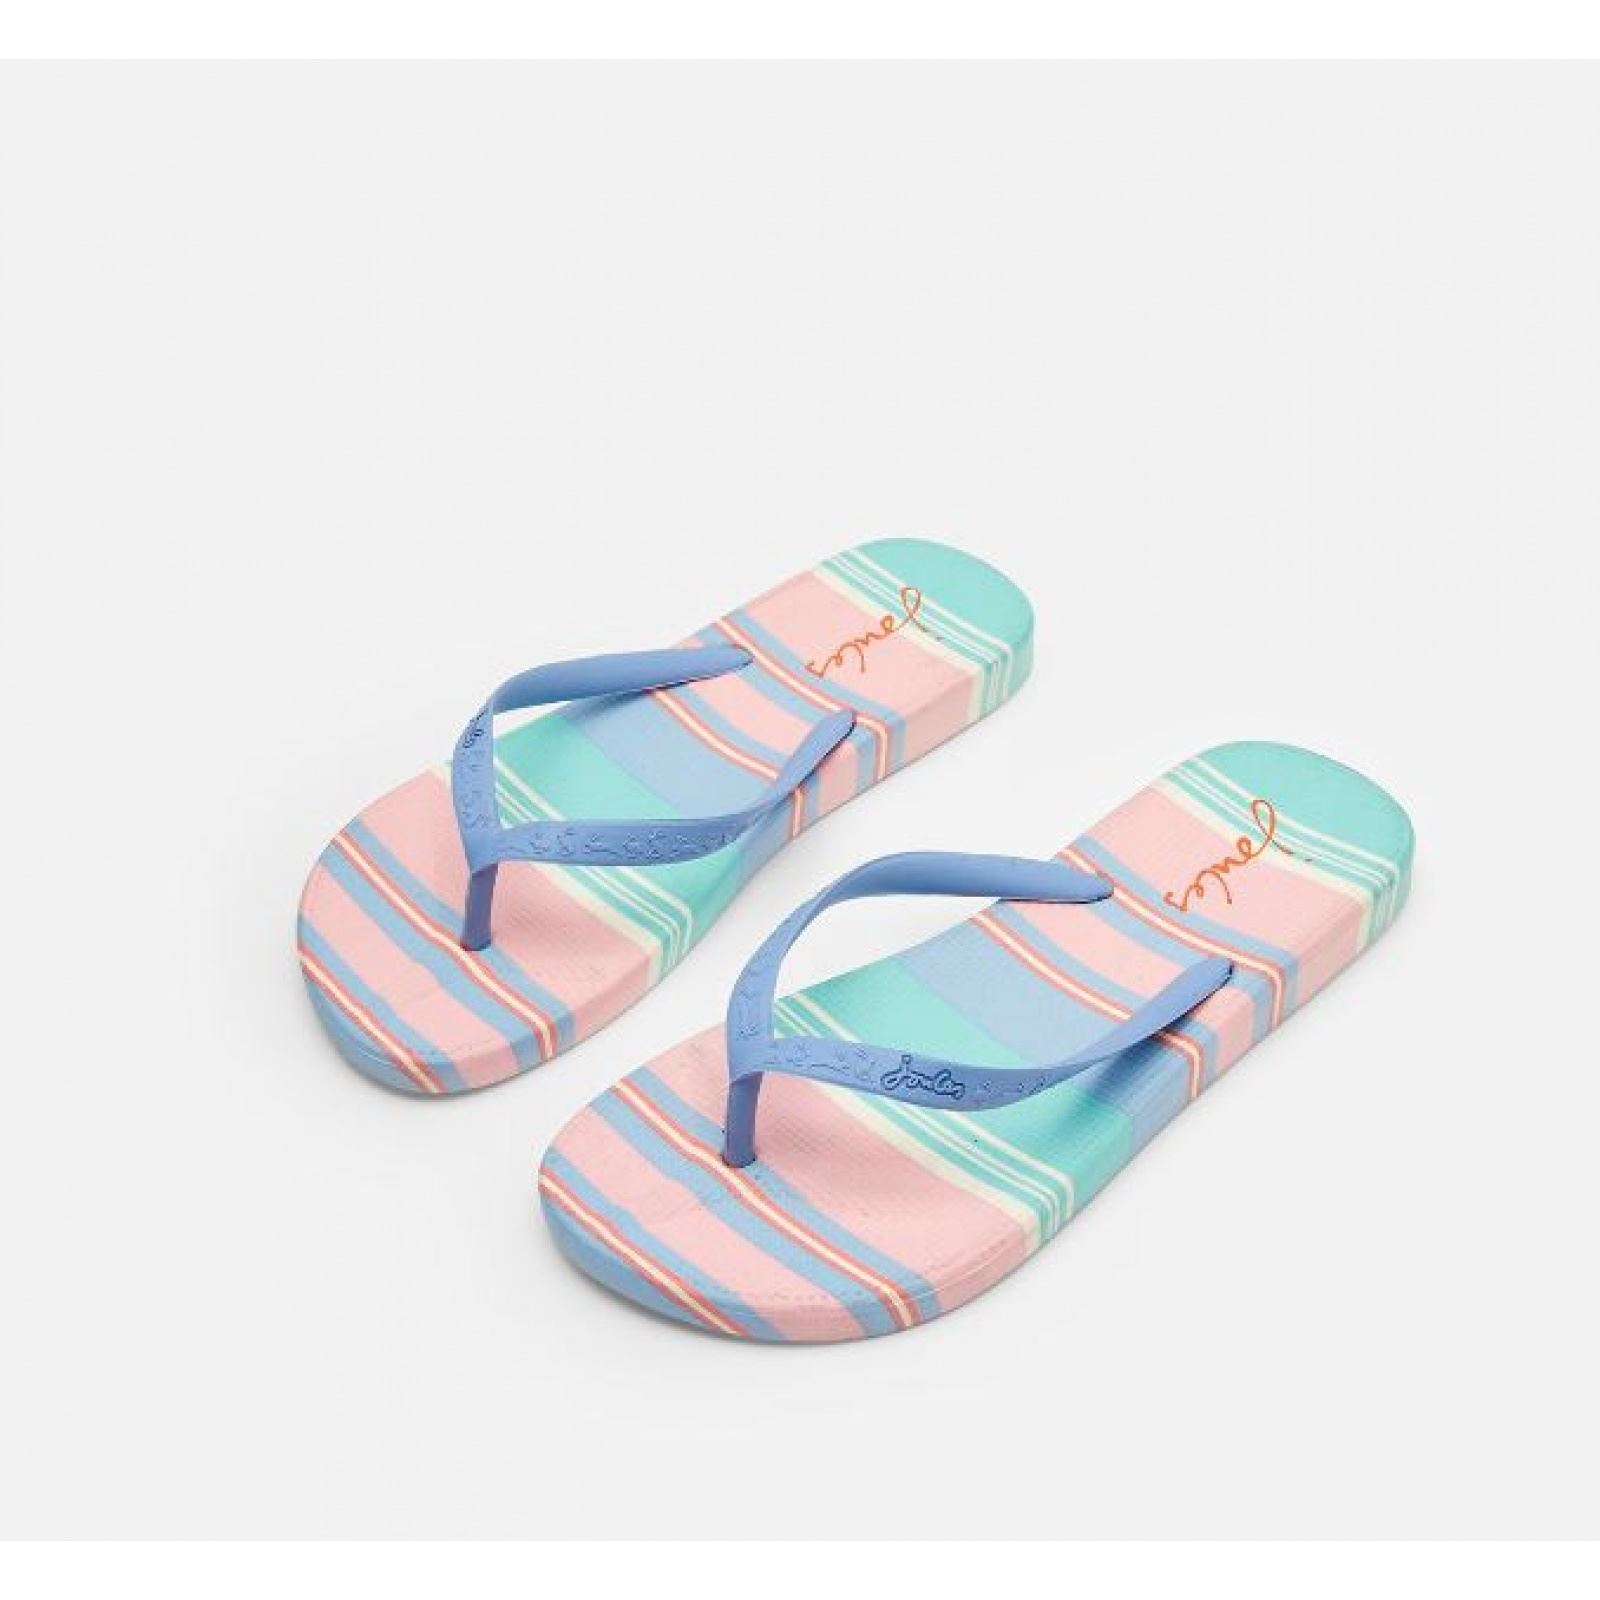 Joules-Flip-Flops-Sandals-Summer-Flip-Flop-NEW-2019-COLOURS thumbnail 31